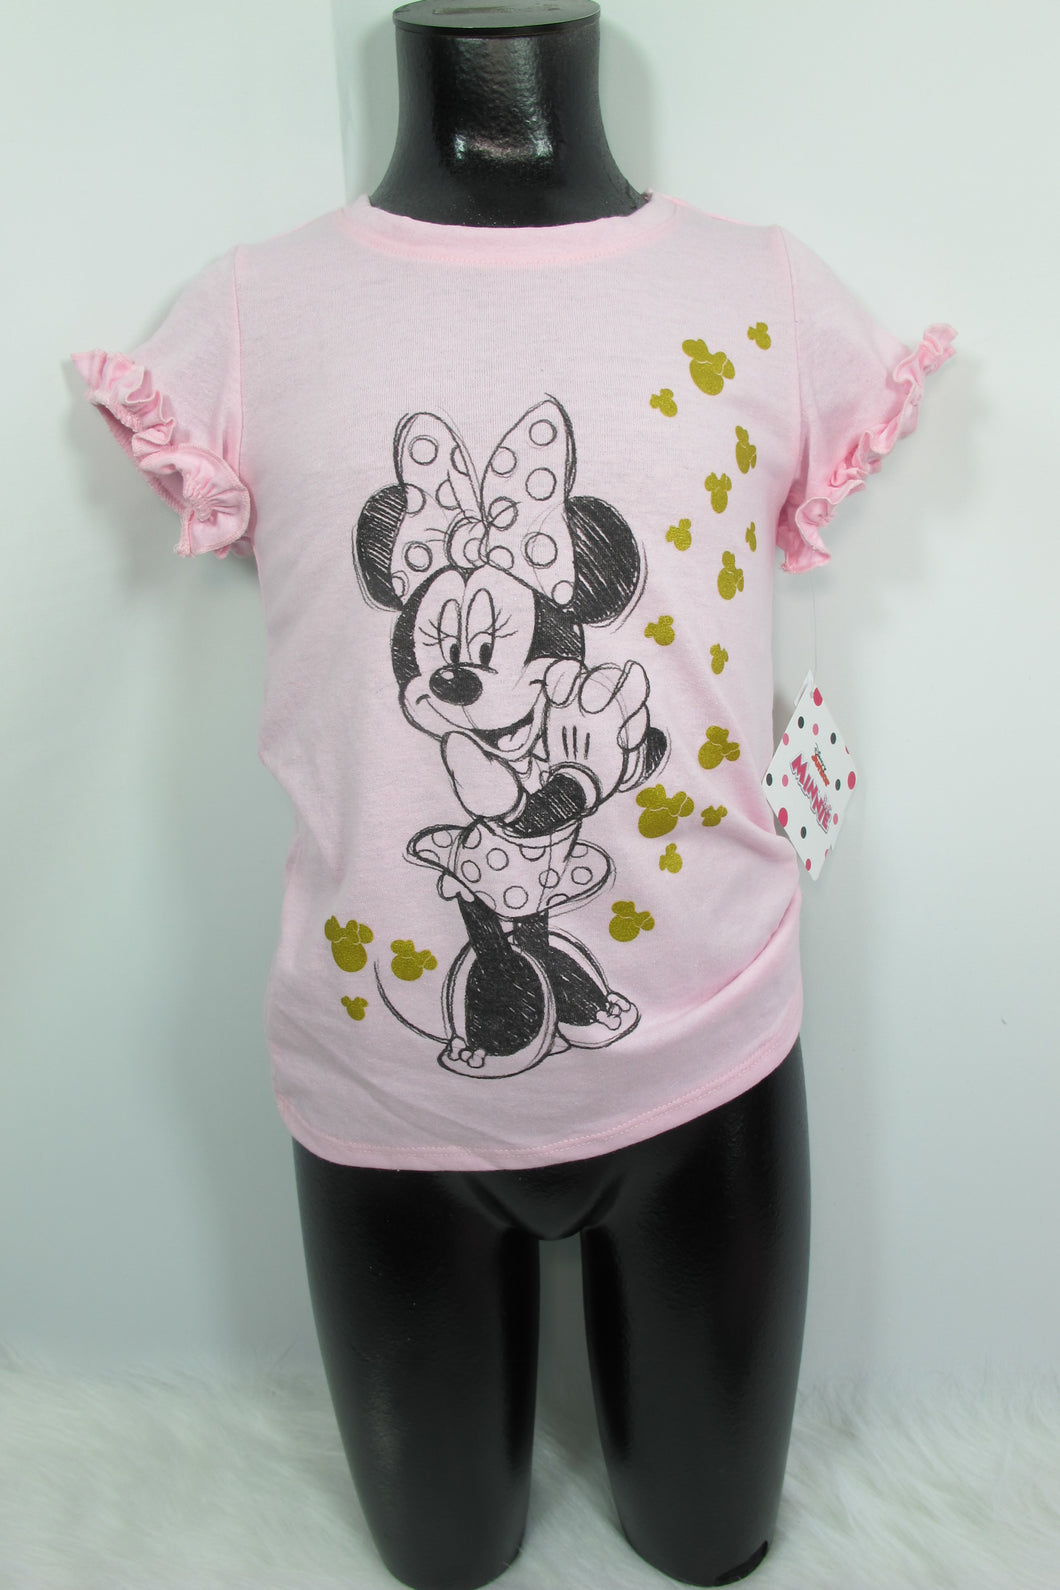 Little Girl's Pink Minnie Mouse Top